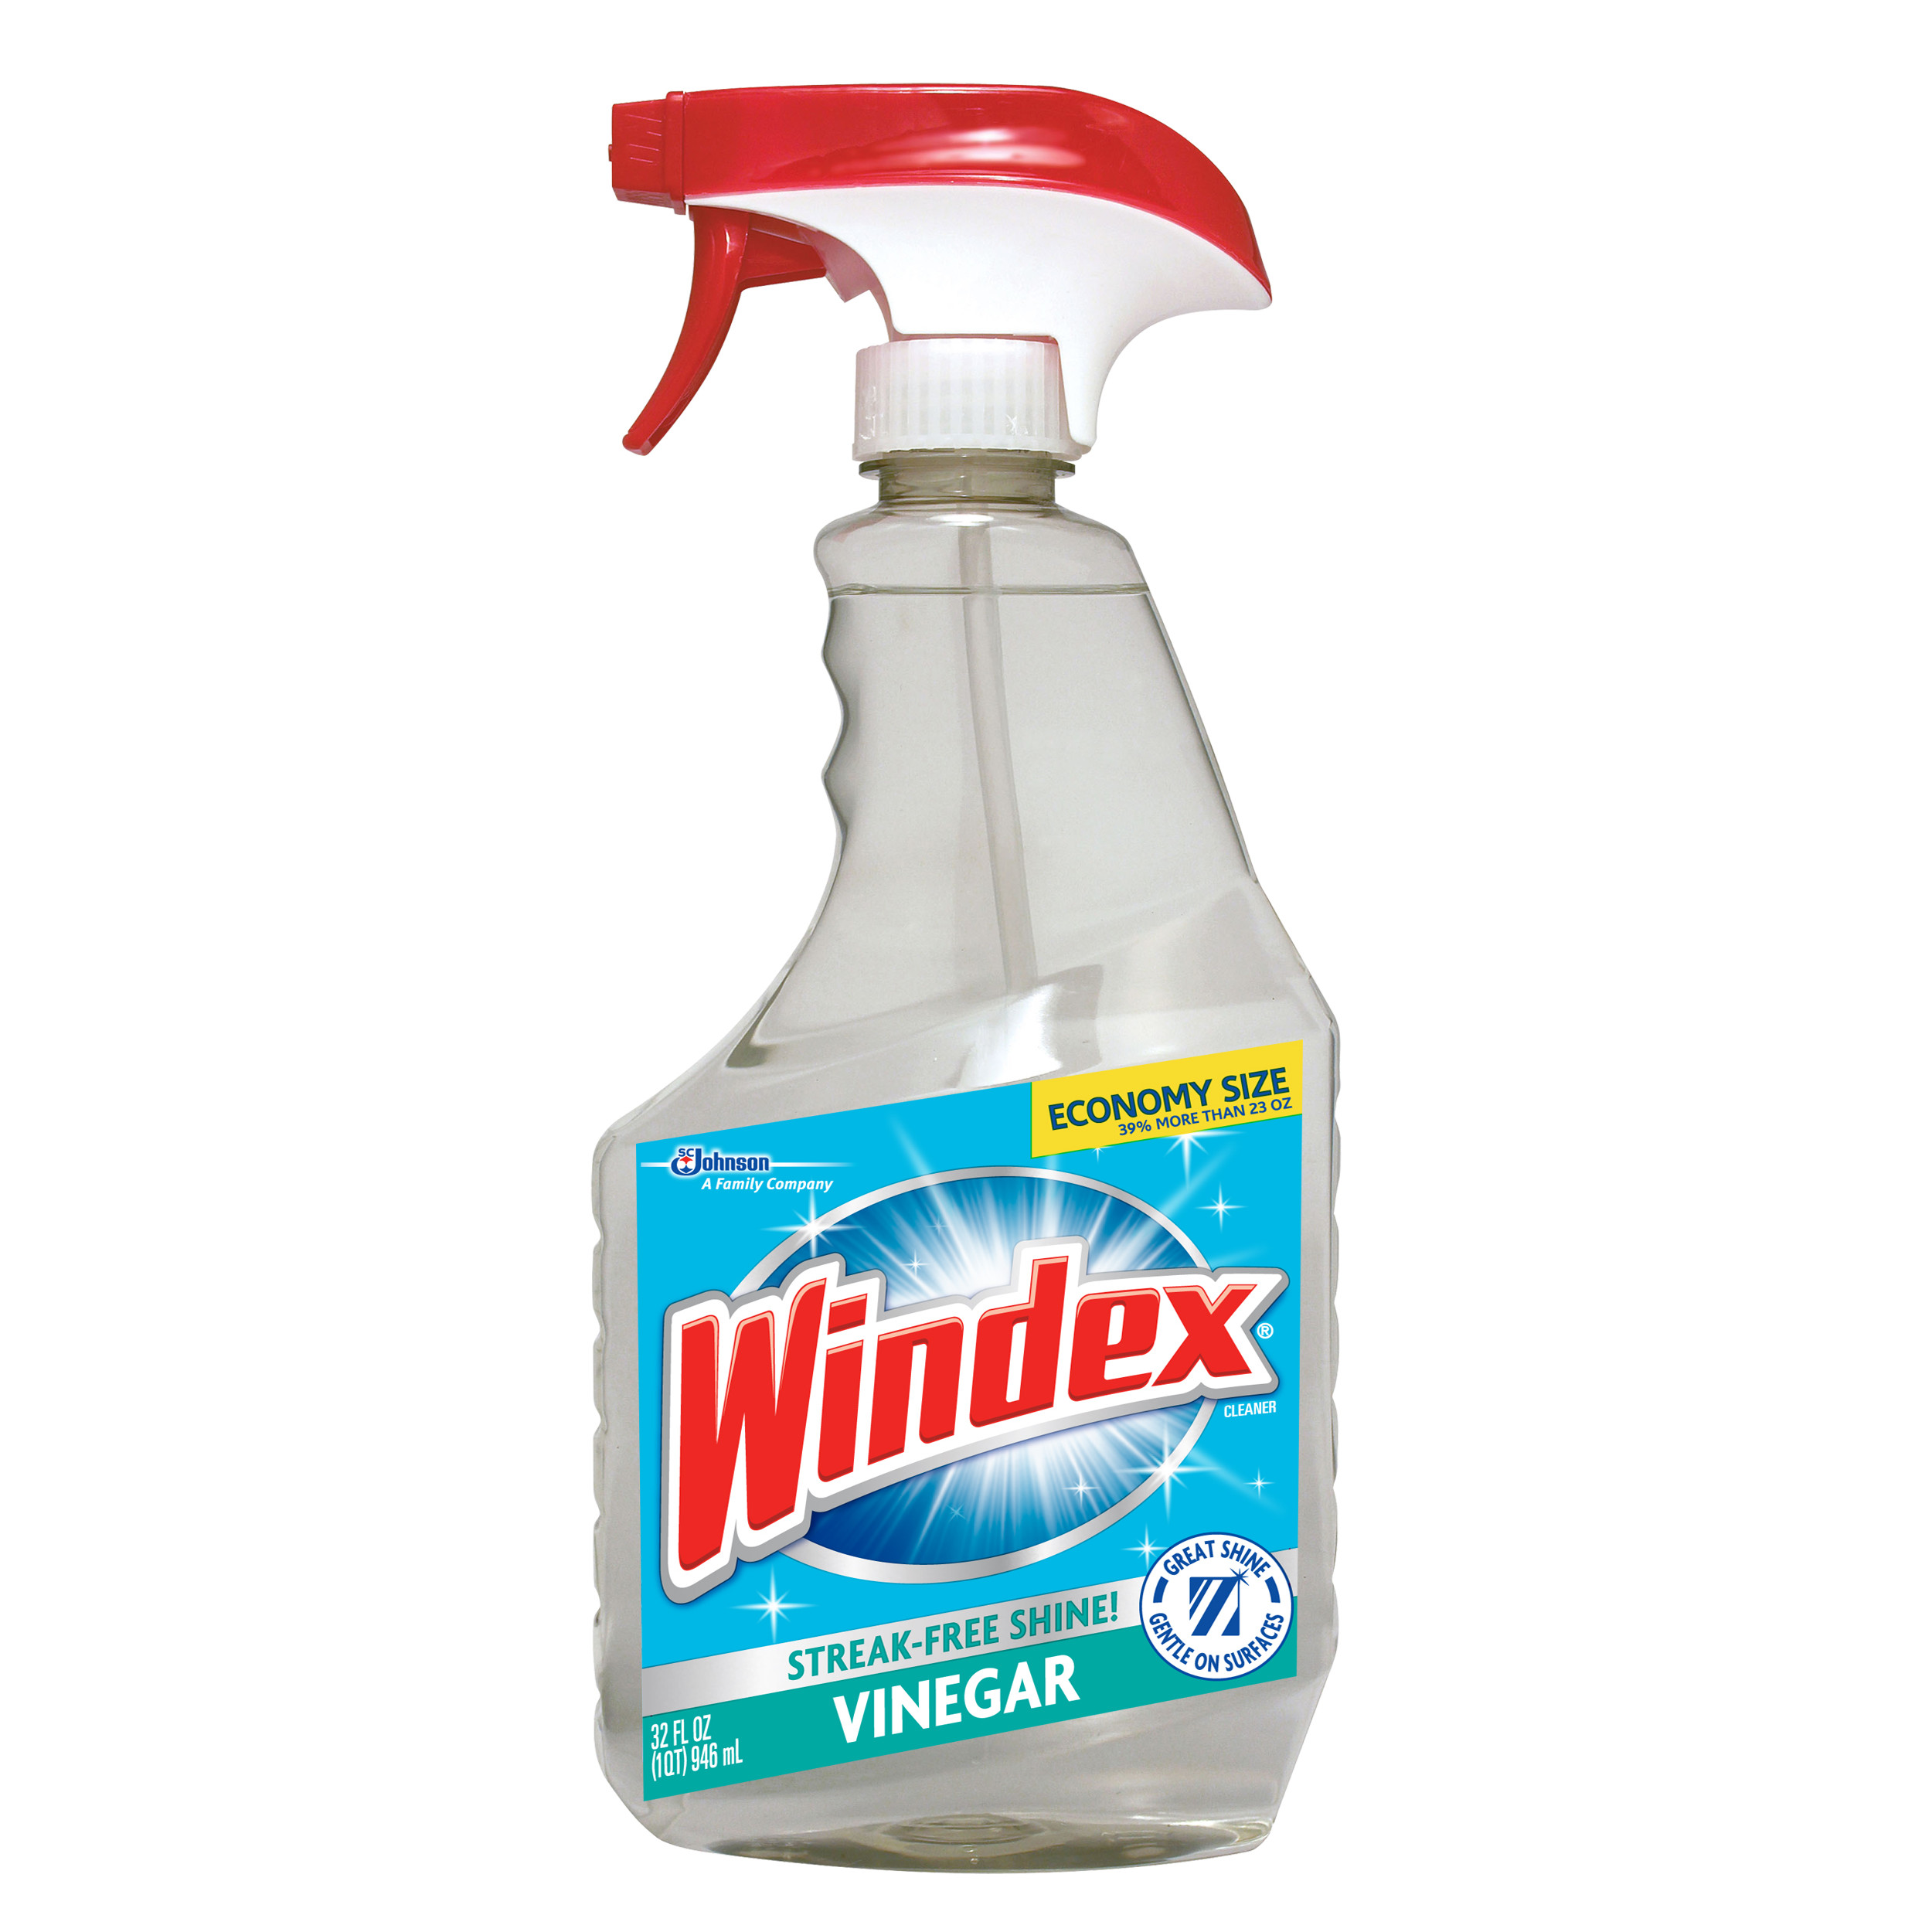 Windex Vinegar Multi-Surface Cleaner Trigger 32 Fluid Ounces